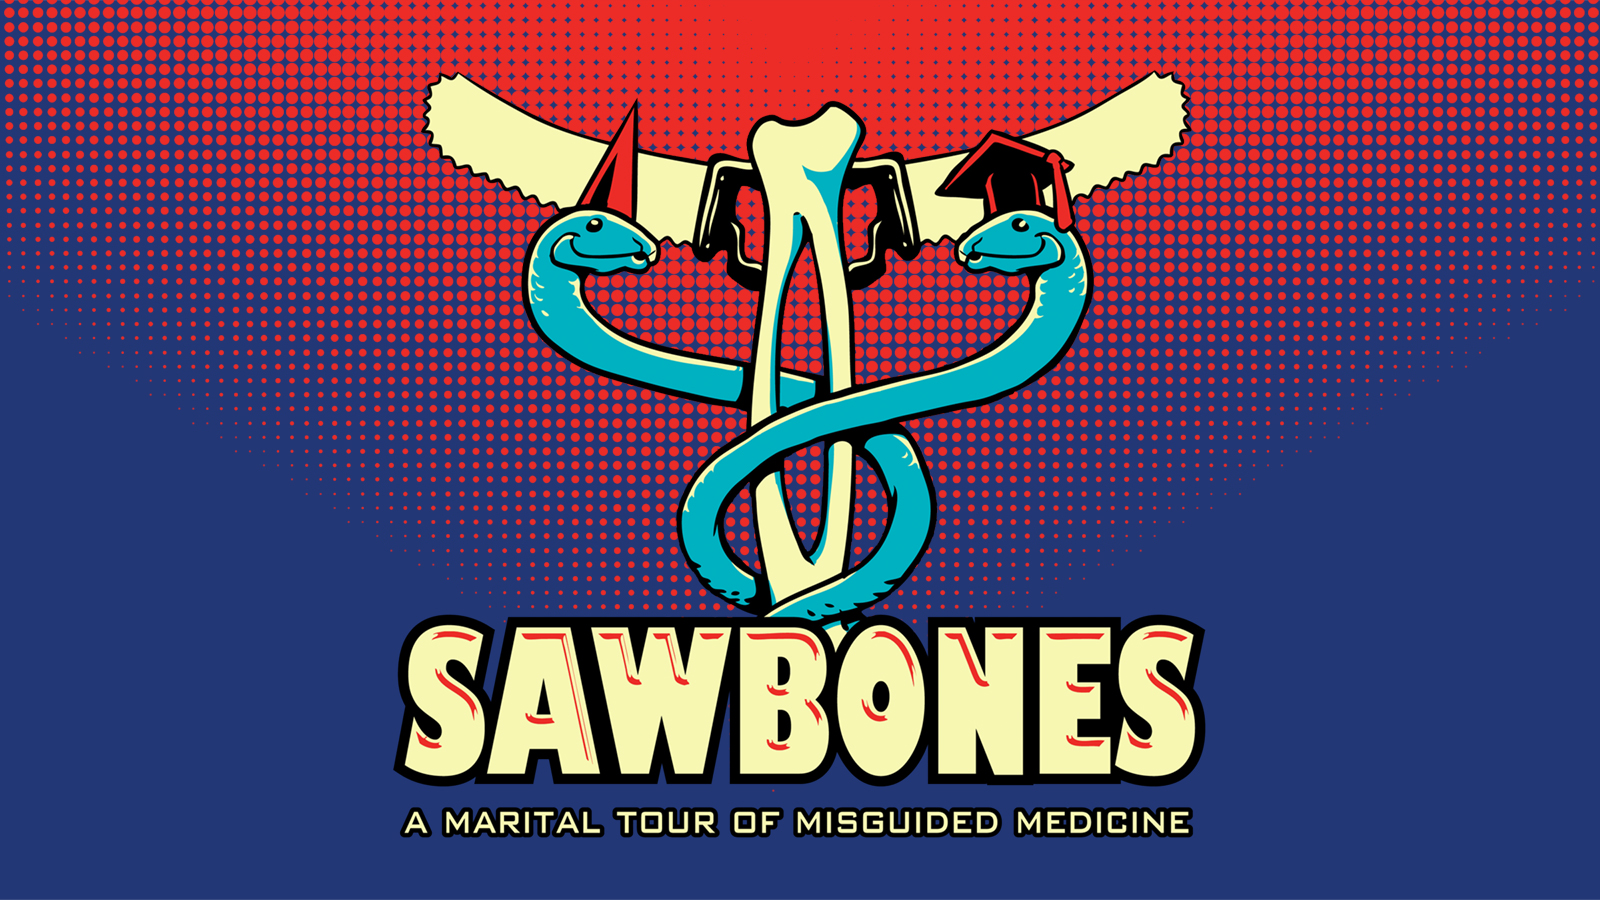 """An illustration of two blue snakes twisting around a radius and ulna bone topped with a handsaw coming off either side to form a caduceus staff. The snake on the left is wearing a red dunce cap and the snake on the right is wearing a red graduation cap. The background is a pop art style red to blue fade. At the bottom of the image it says """"Sawbones"""" with """"A marital tour of misguided medicine"""" written below that."""